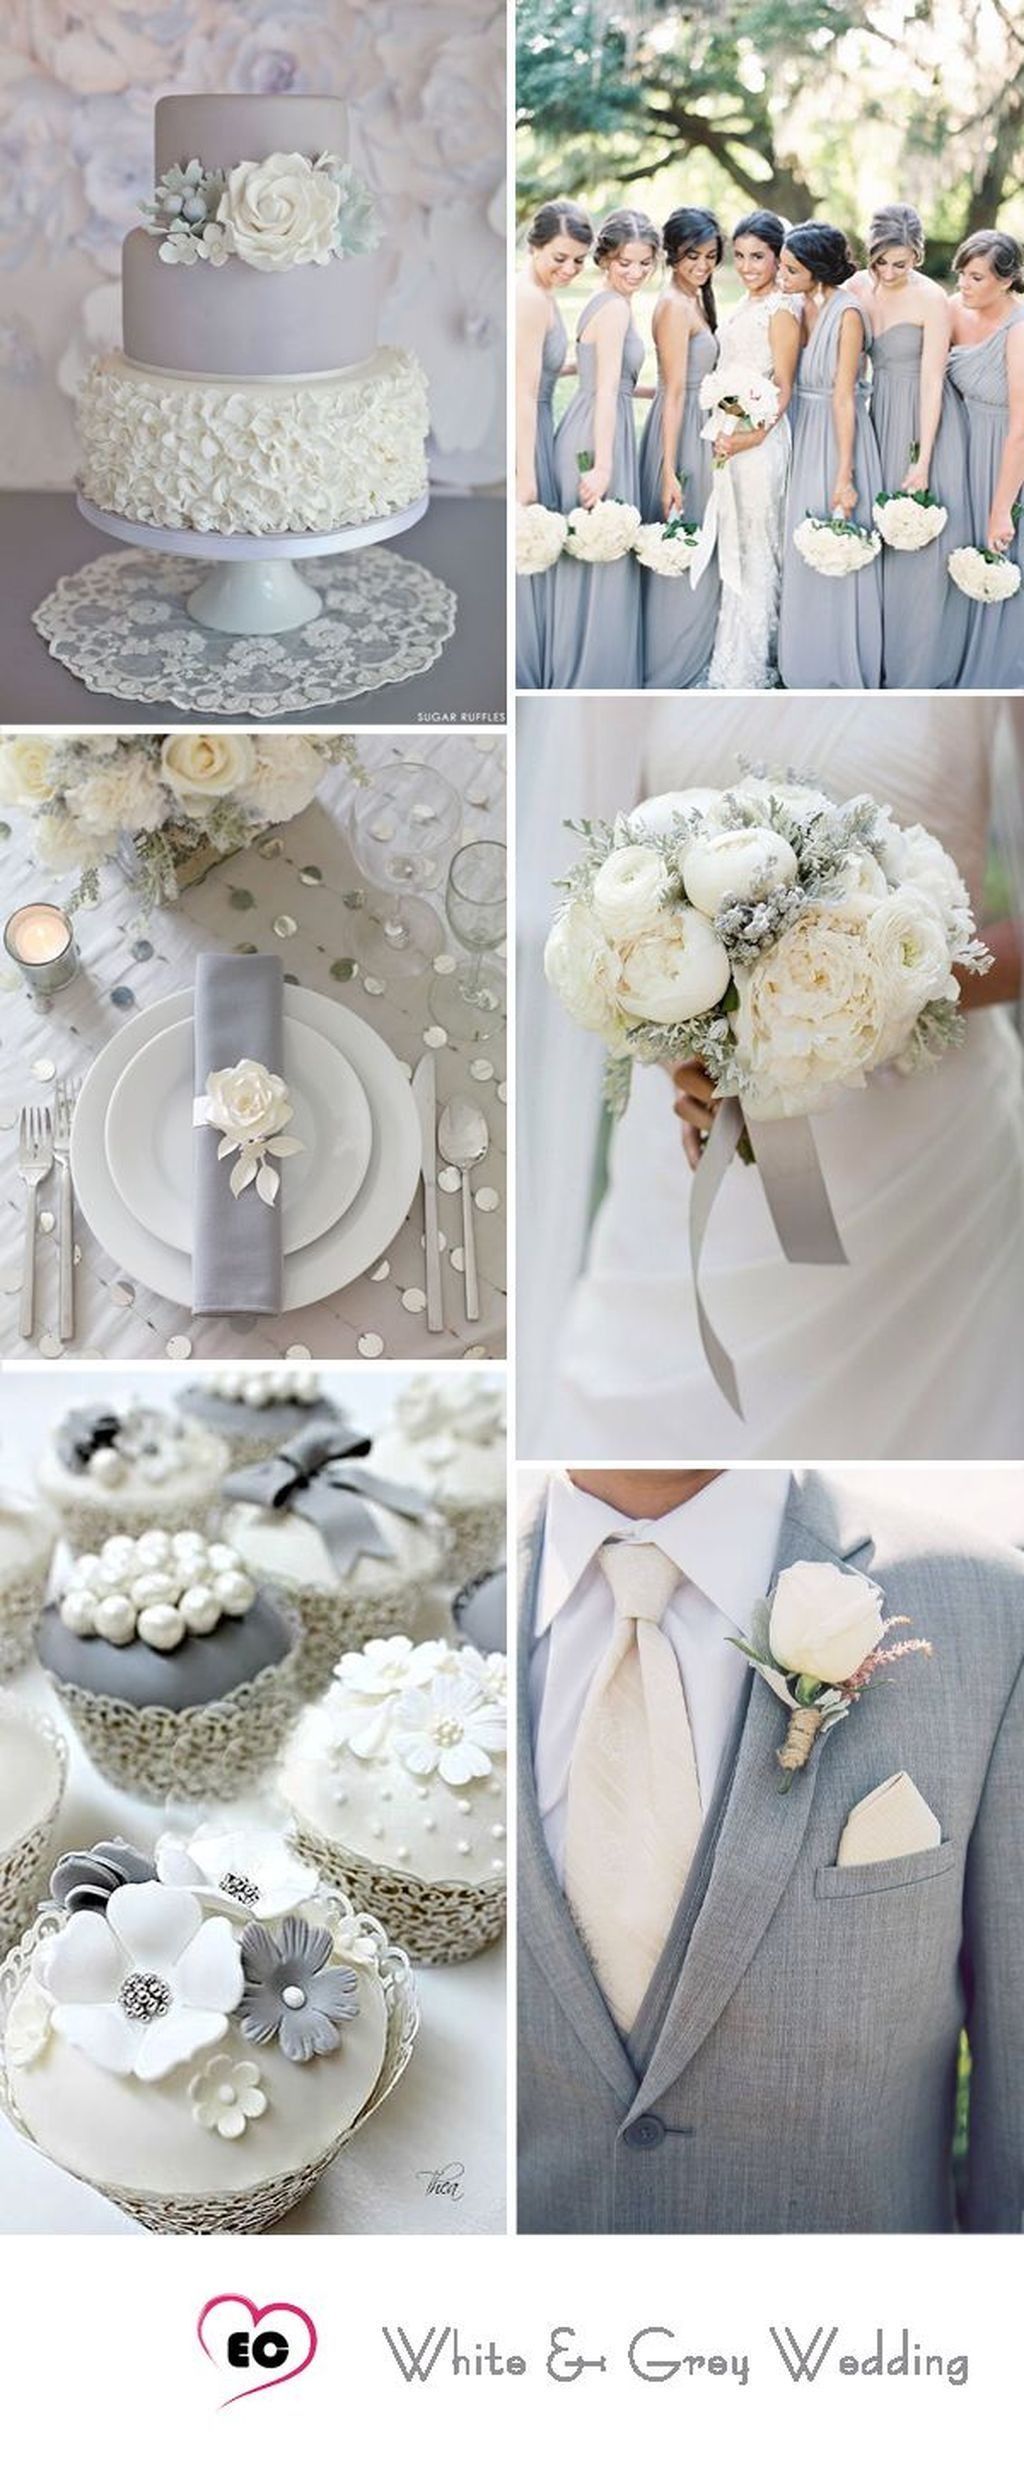 33 Amazing Winter Wedding Themes Ideas For Your Special Day | Winter ...